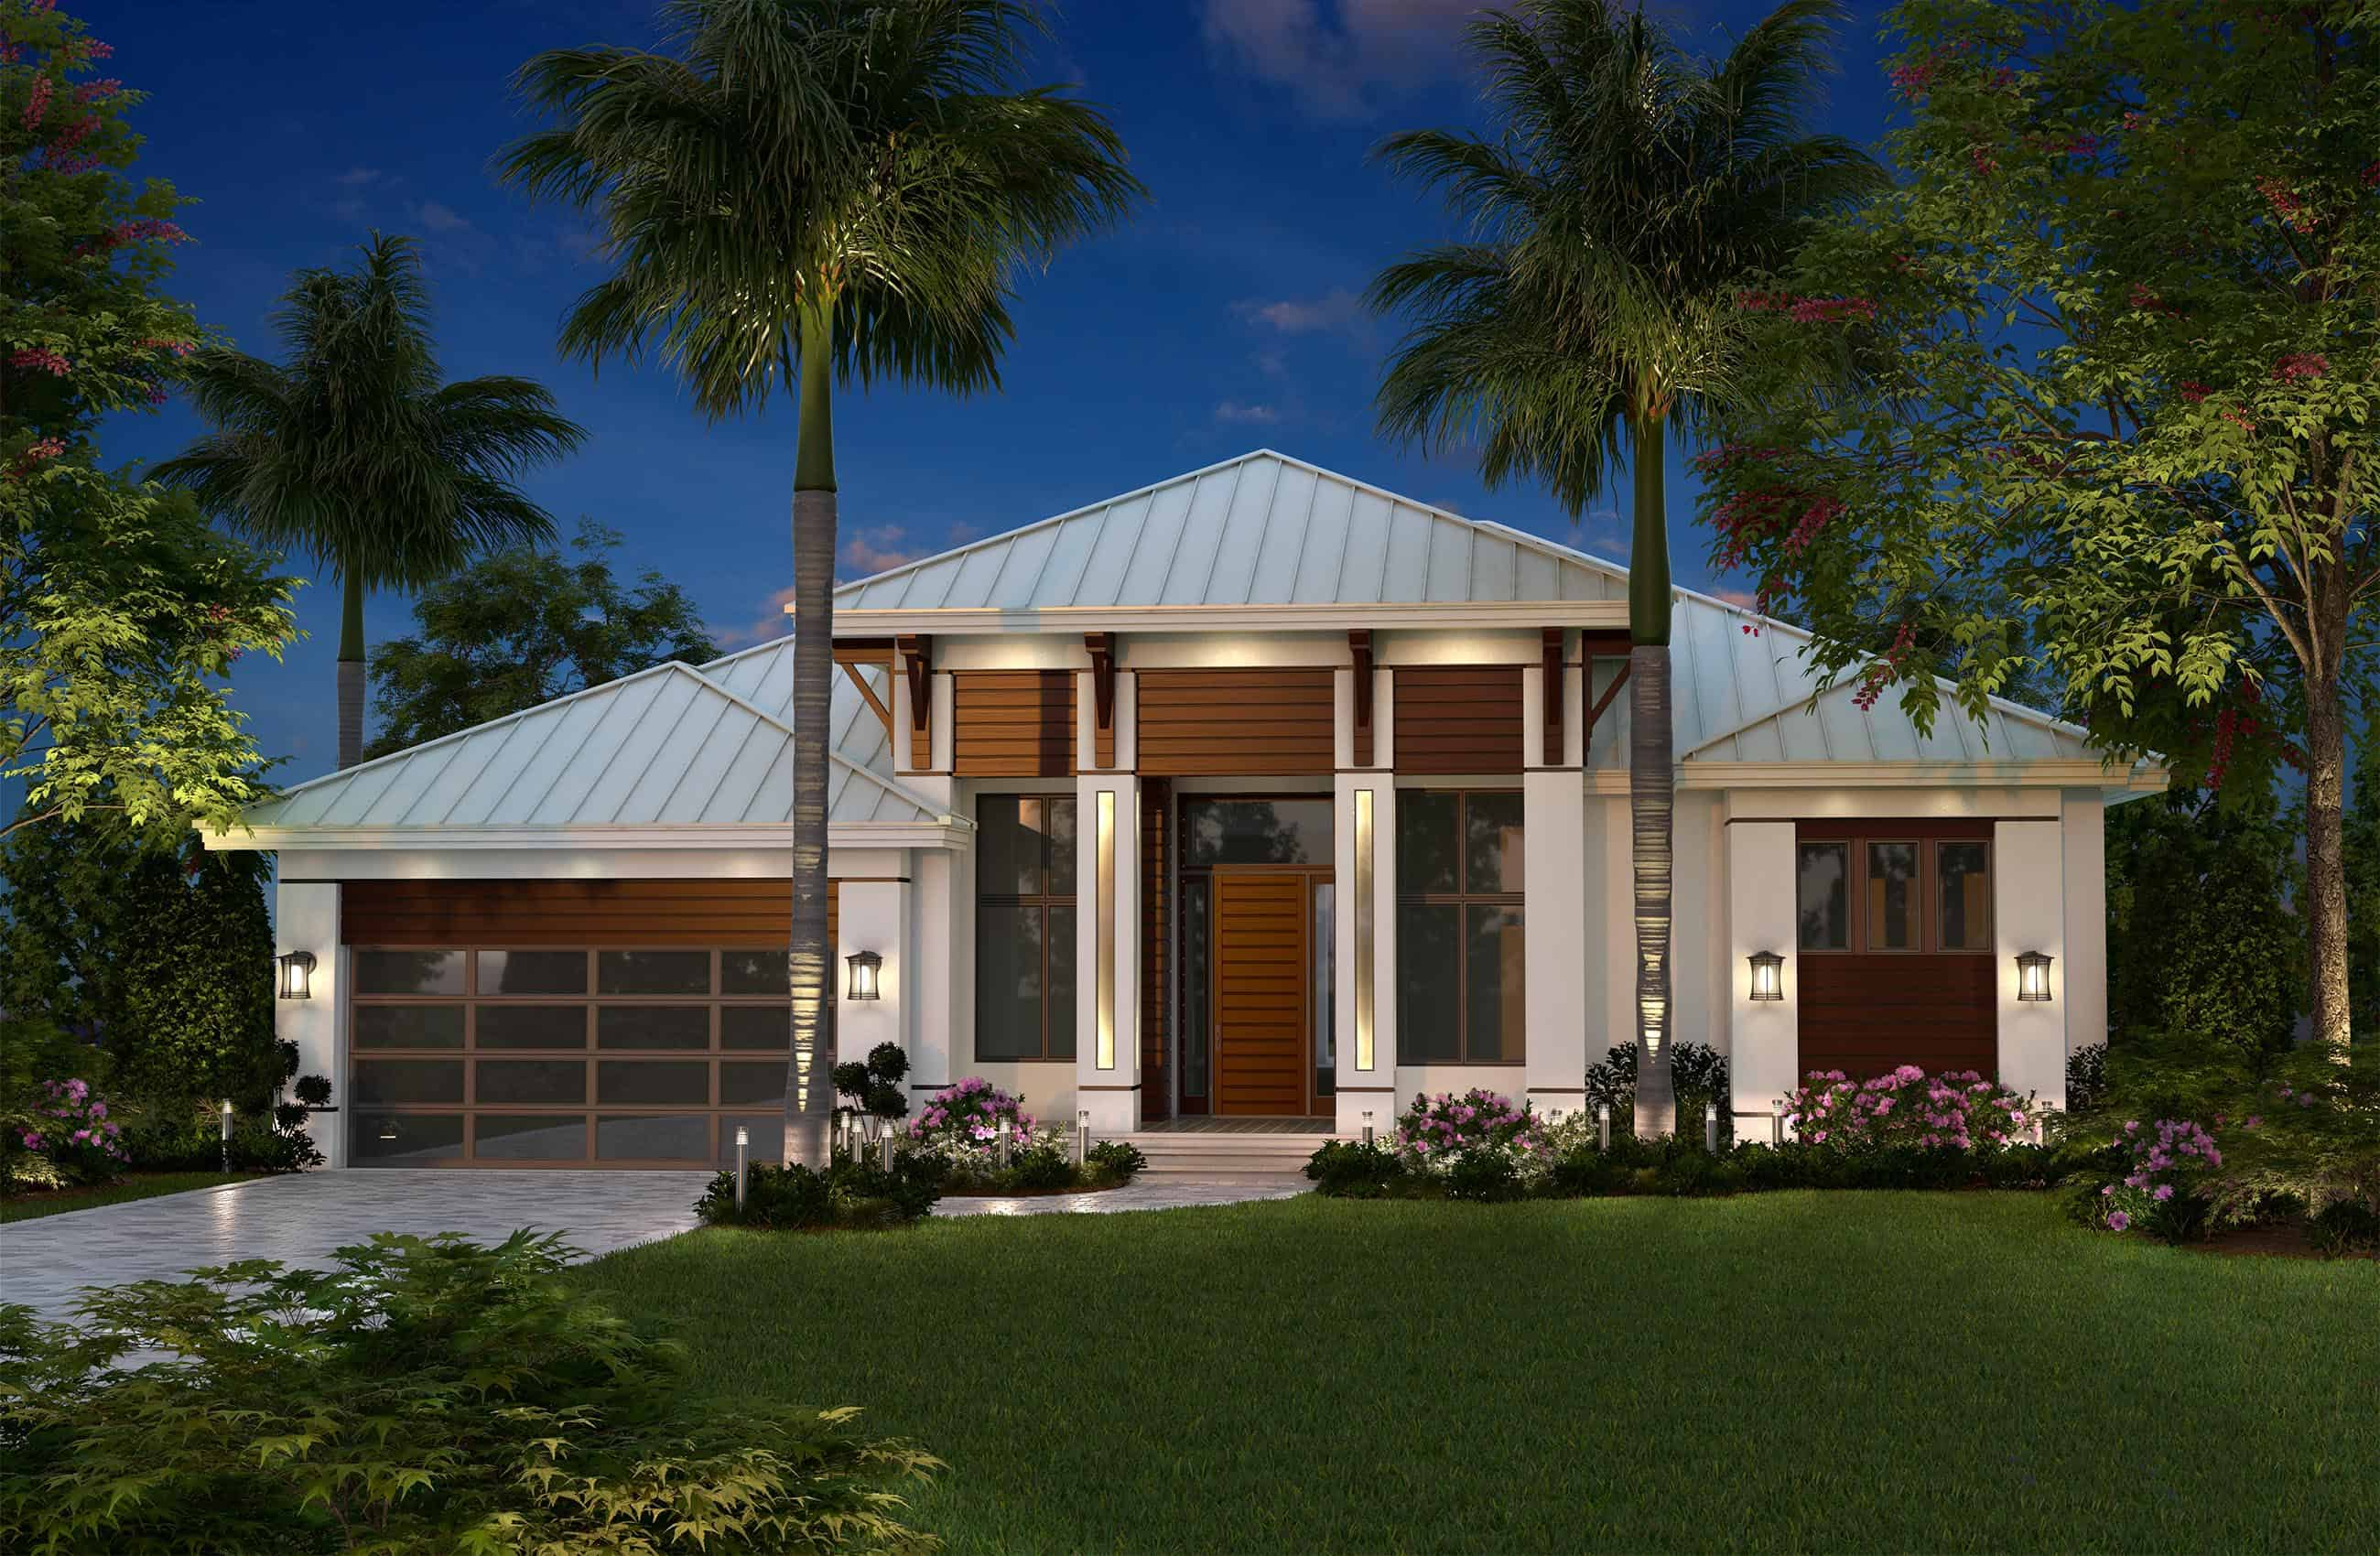 3-Bedroom, 2684 sq ft contemporary house with covered lanai